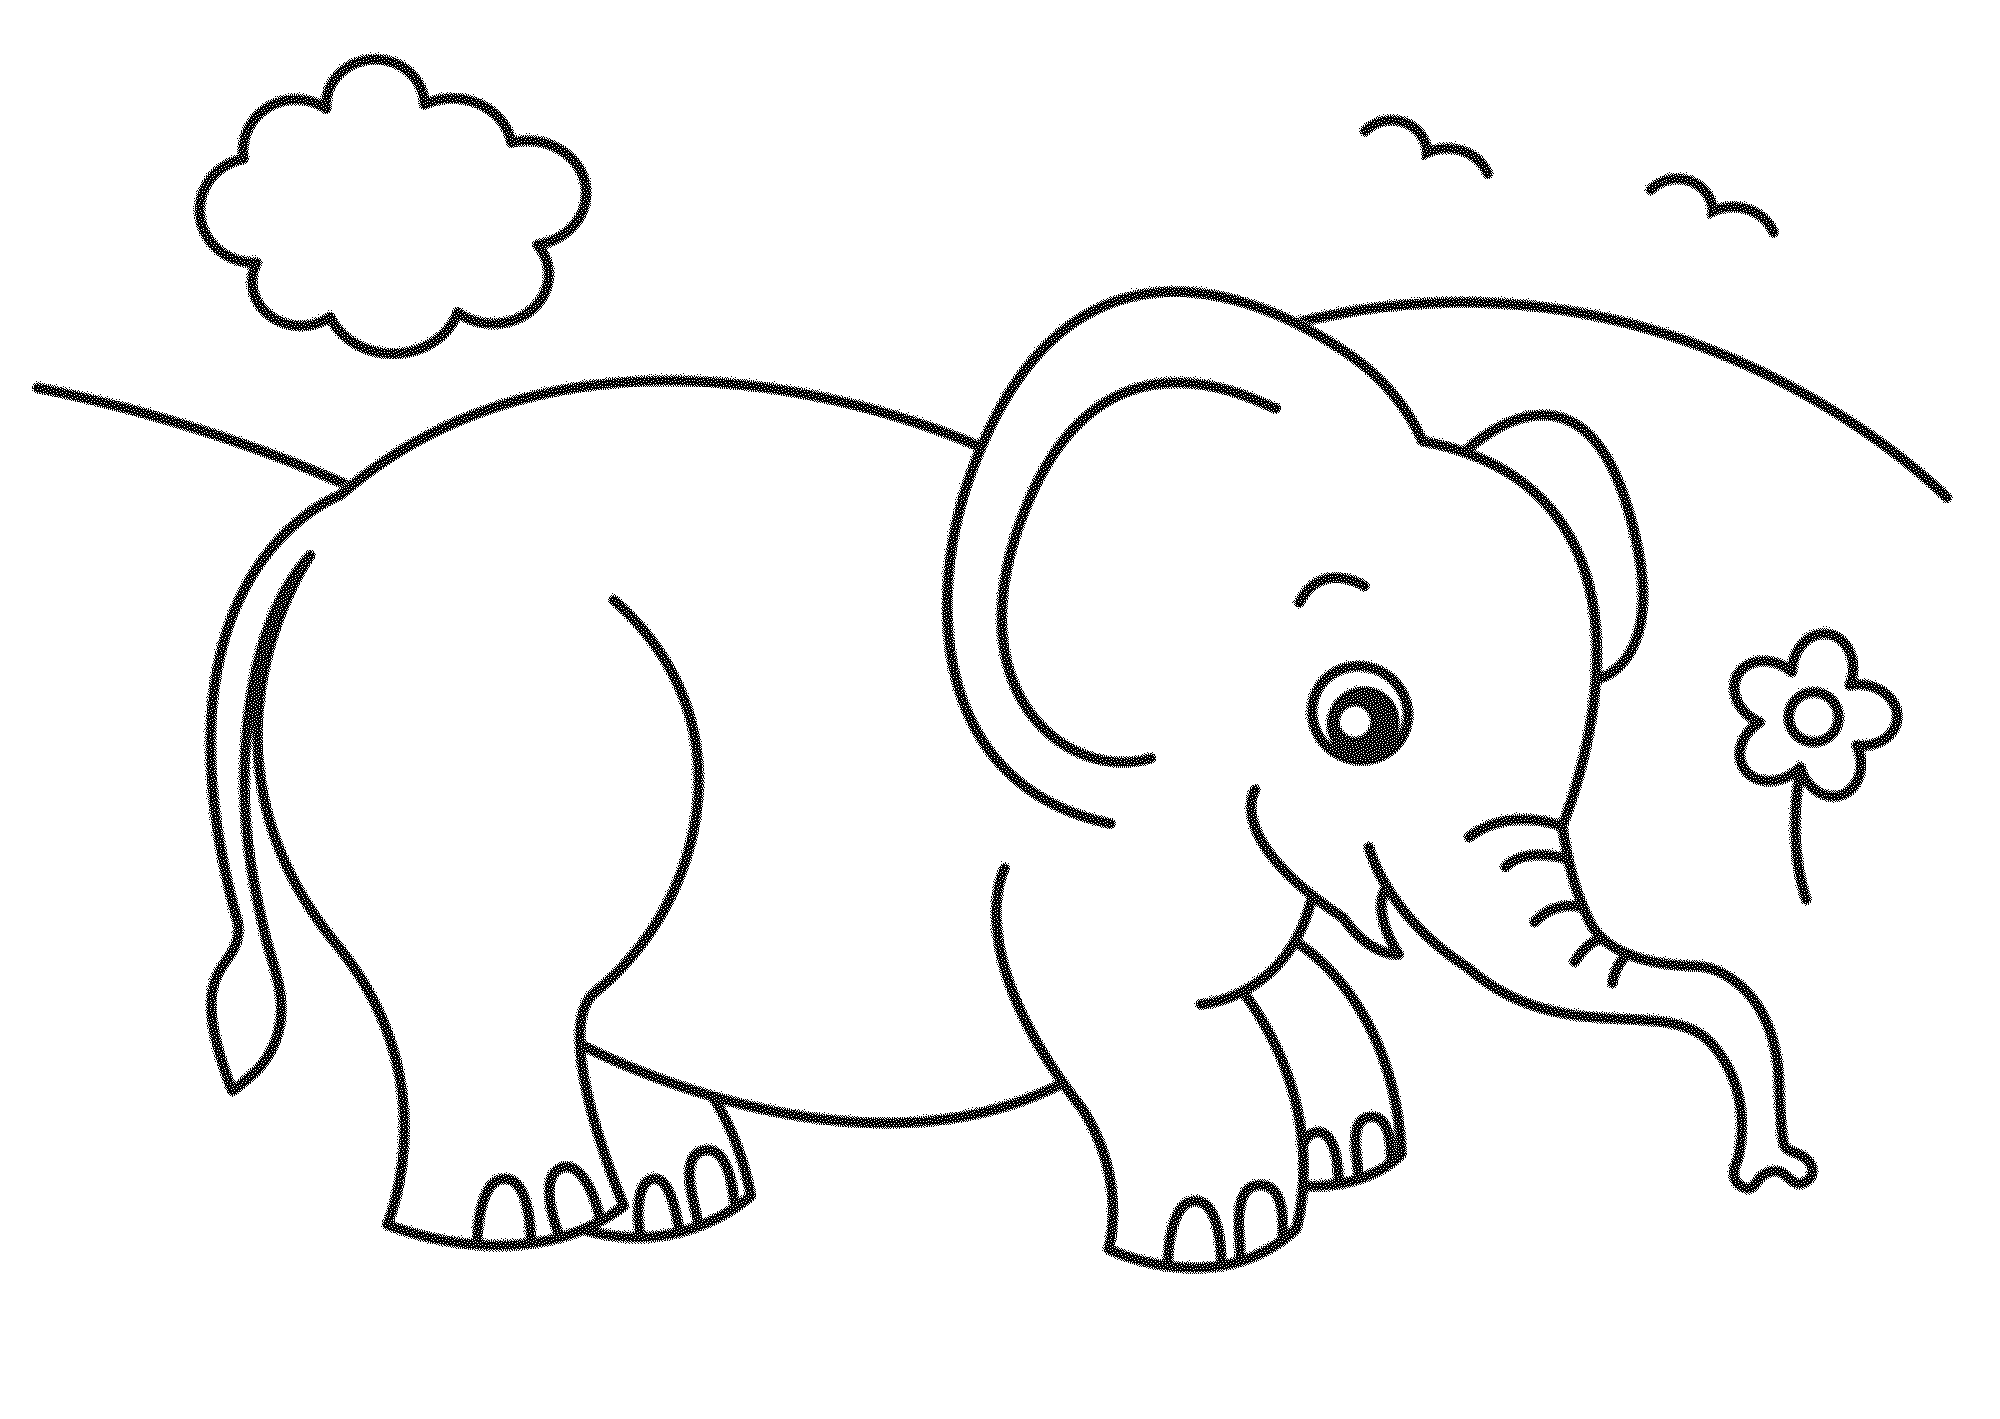 simple baby elephant coloring pages easy coloring pages coloring pages elephant coloring simple elephant pages coloring baby